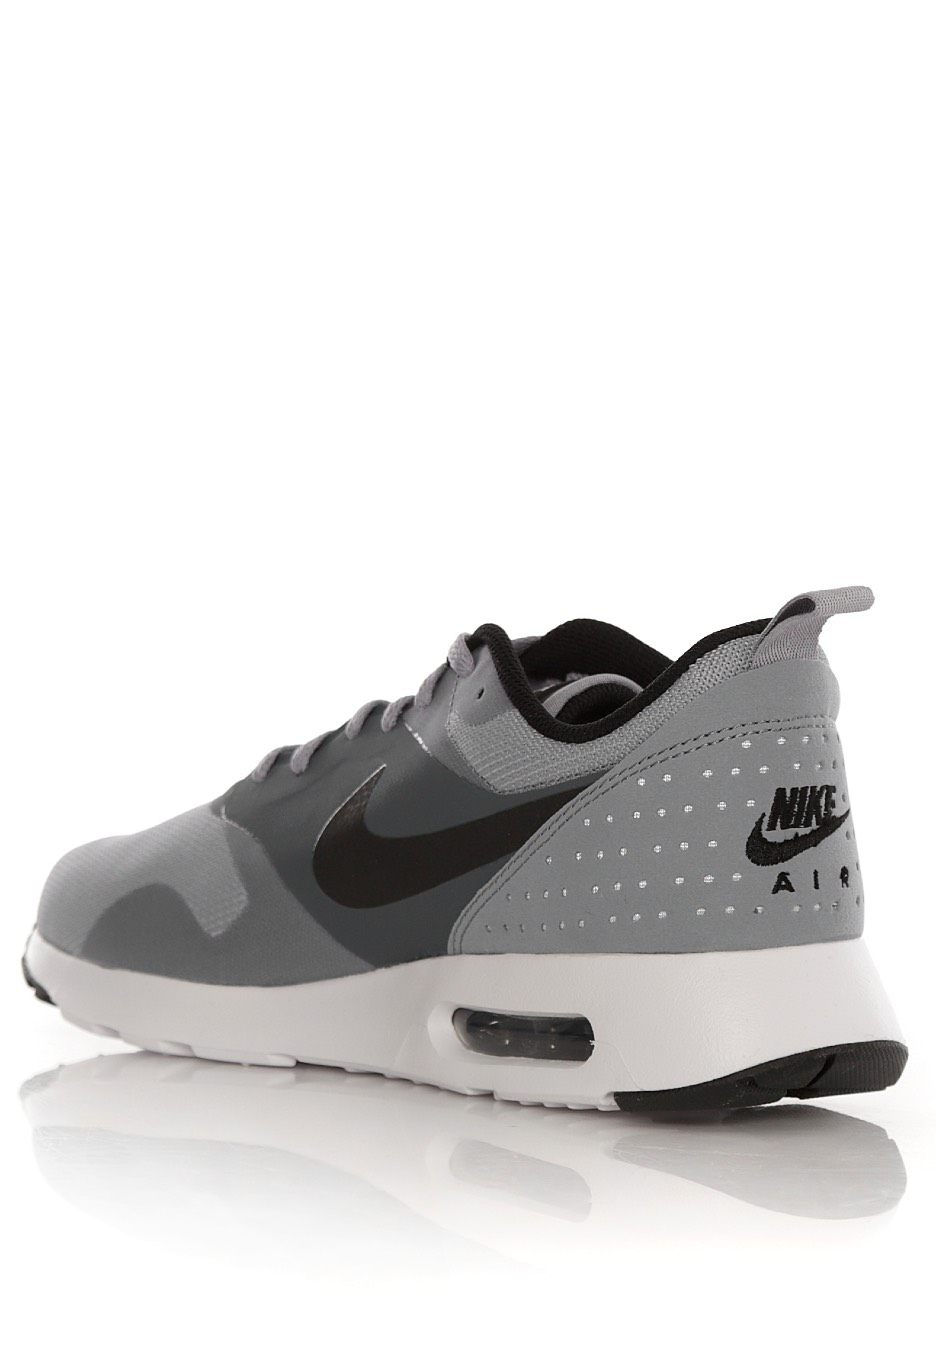 5a7aa7f3287 ... discount code for click esc to close the window. nike air max tavas  stealth black